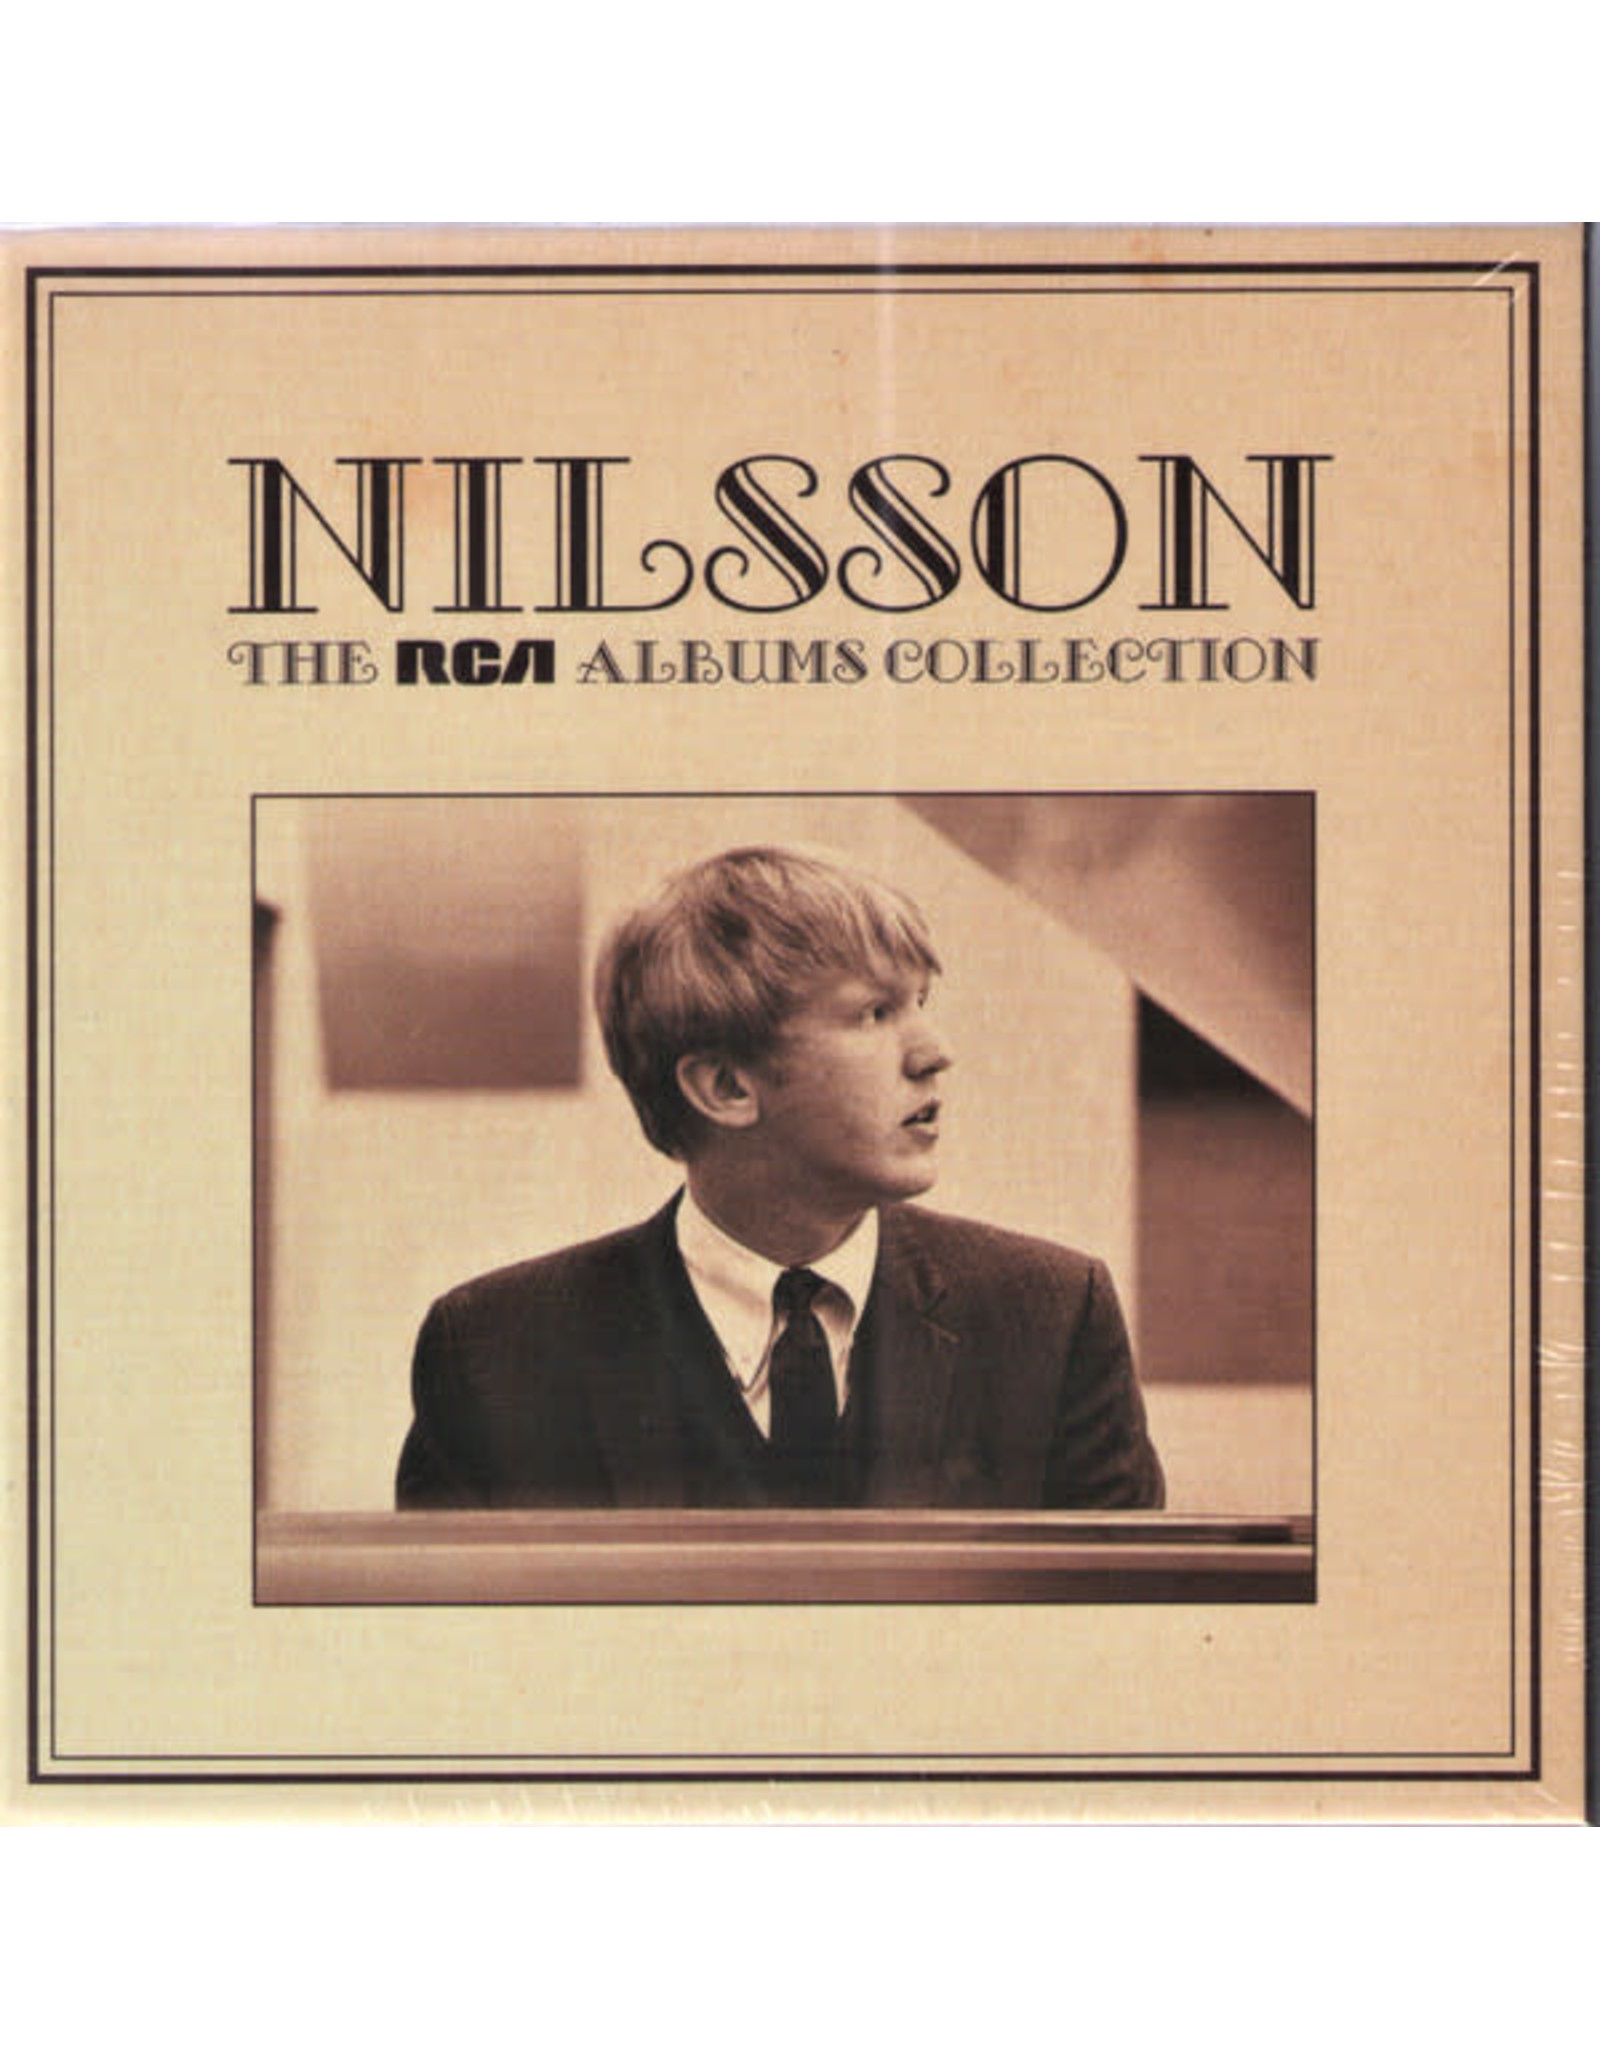 Nilsson, Harry - The RCA Albums Collection CD